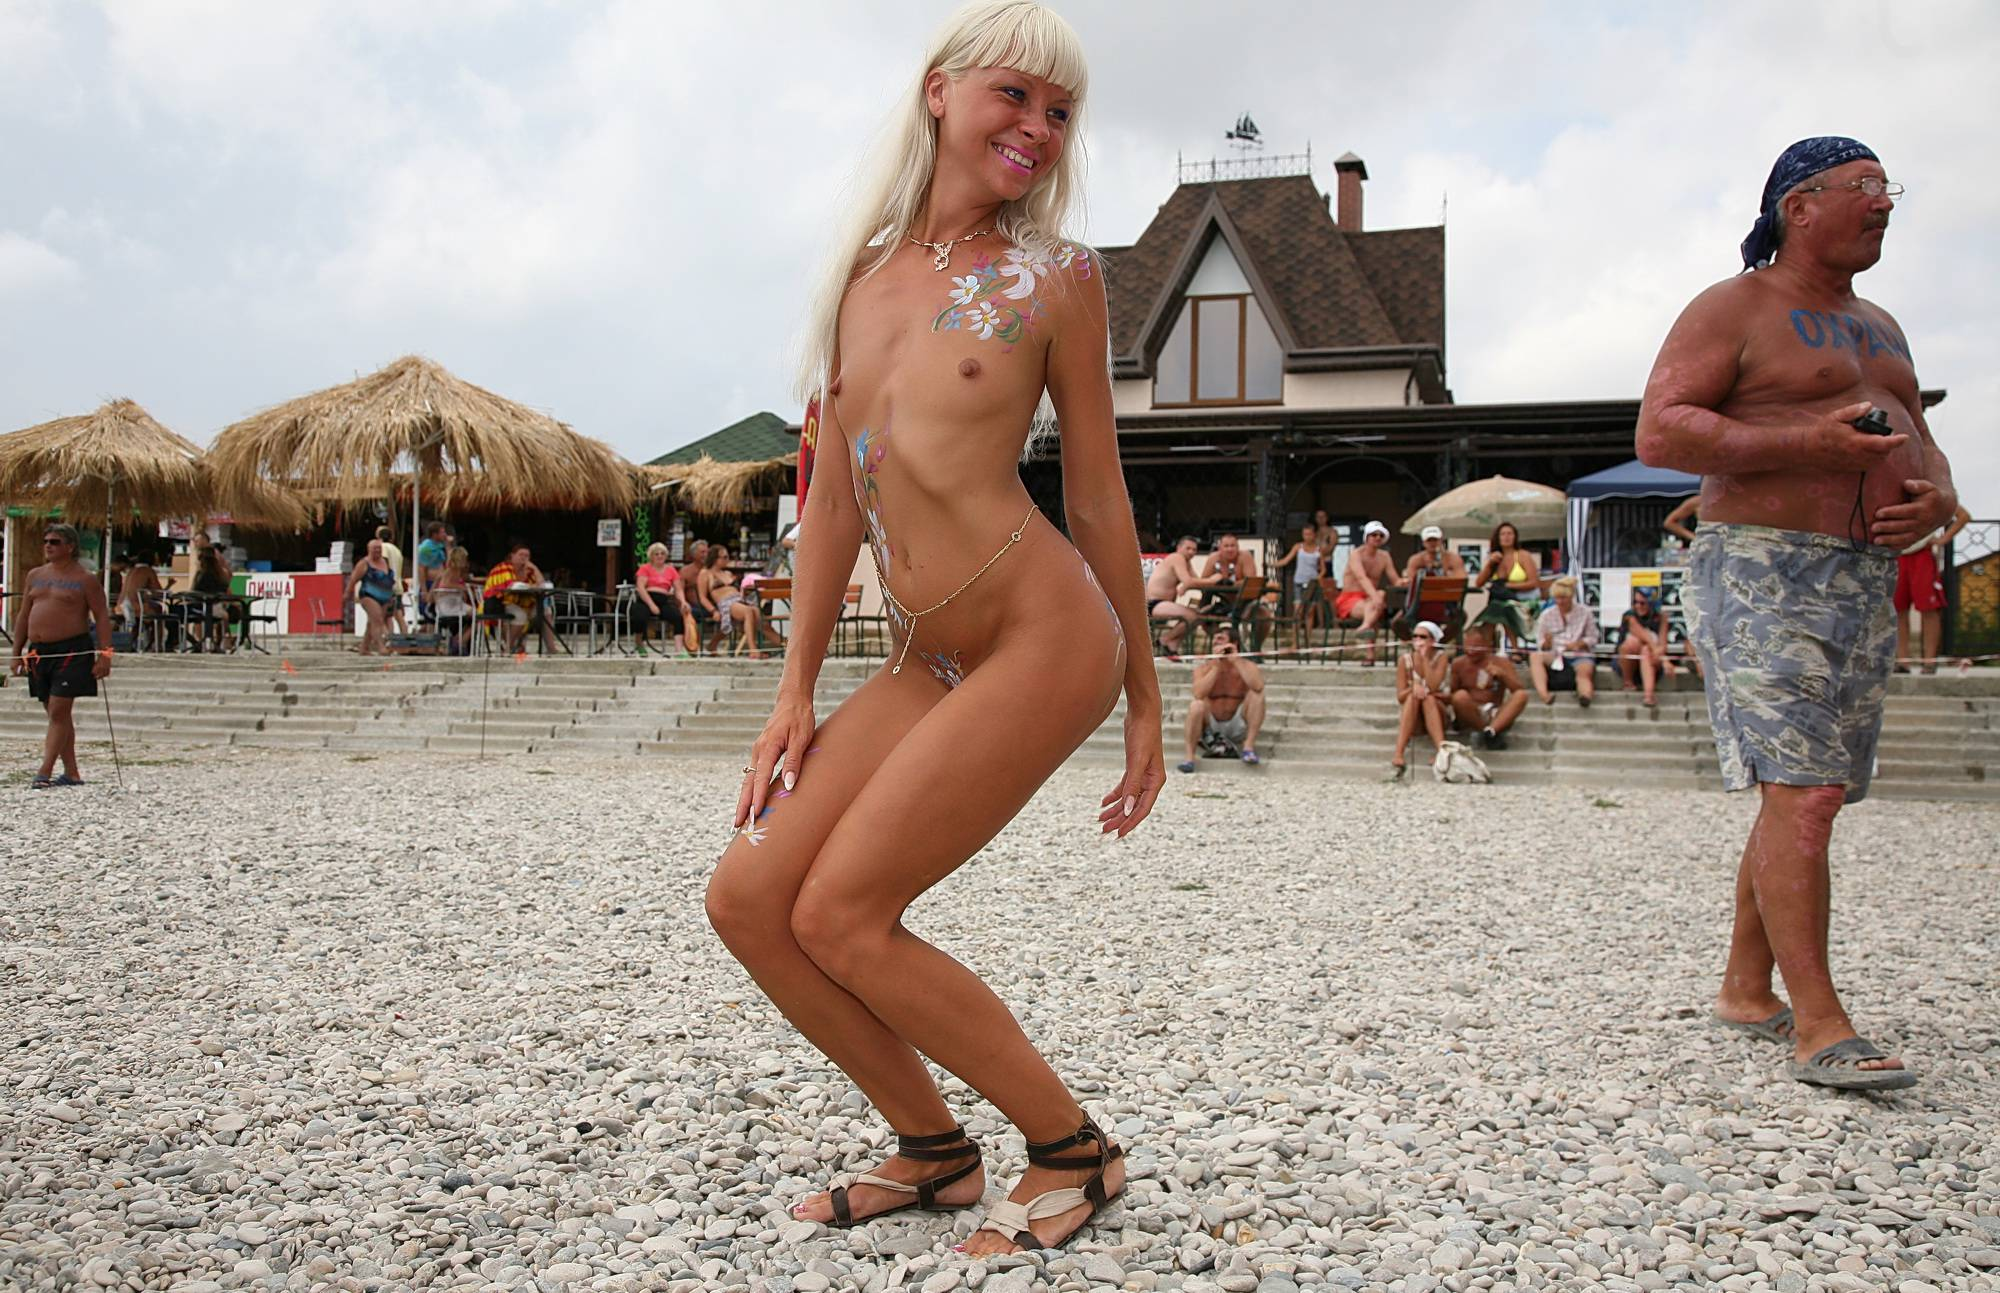 Pure Nudism Images Enjoying Some Time Off - 1